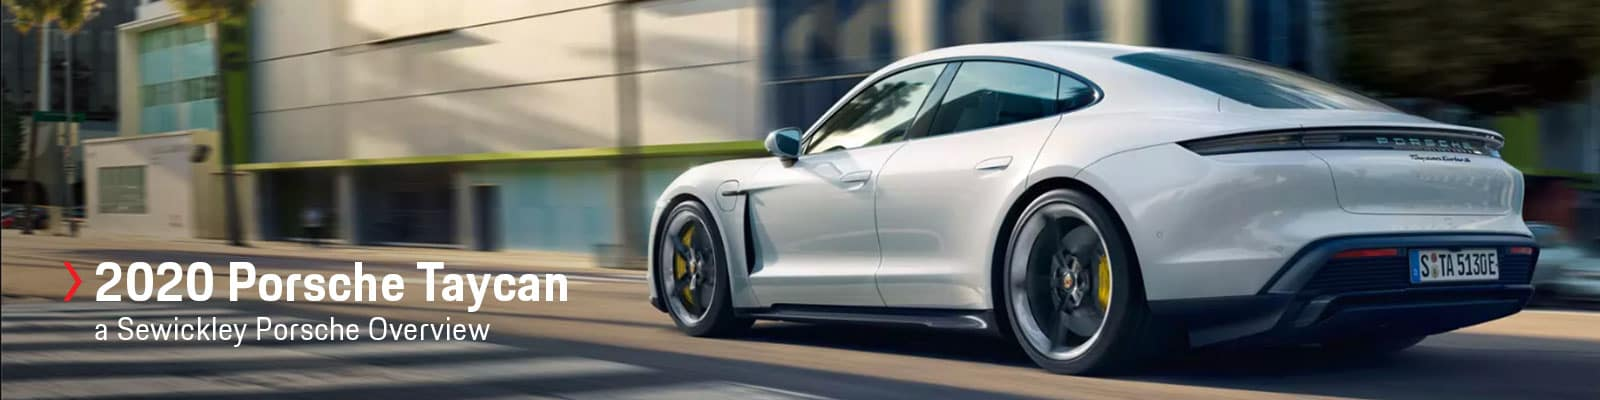 2020 Porsche Taycan Model Review at Sewickley Porsche